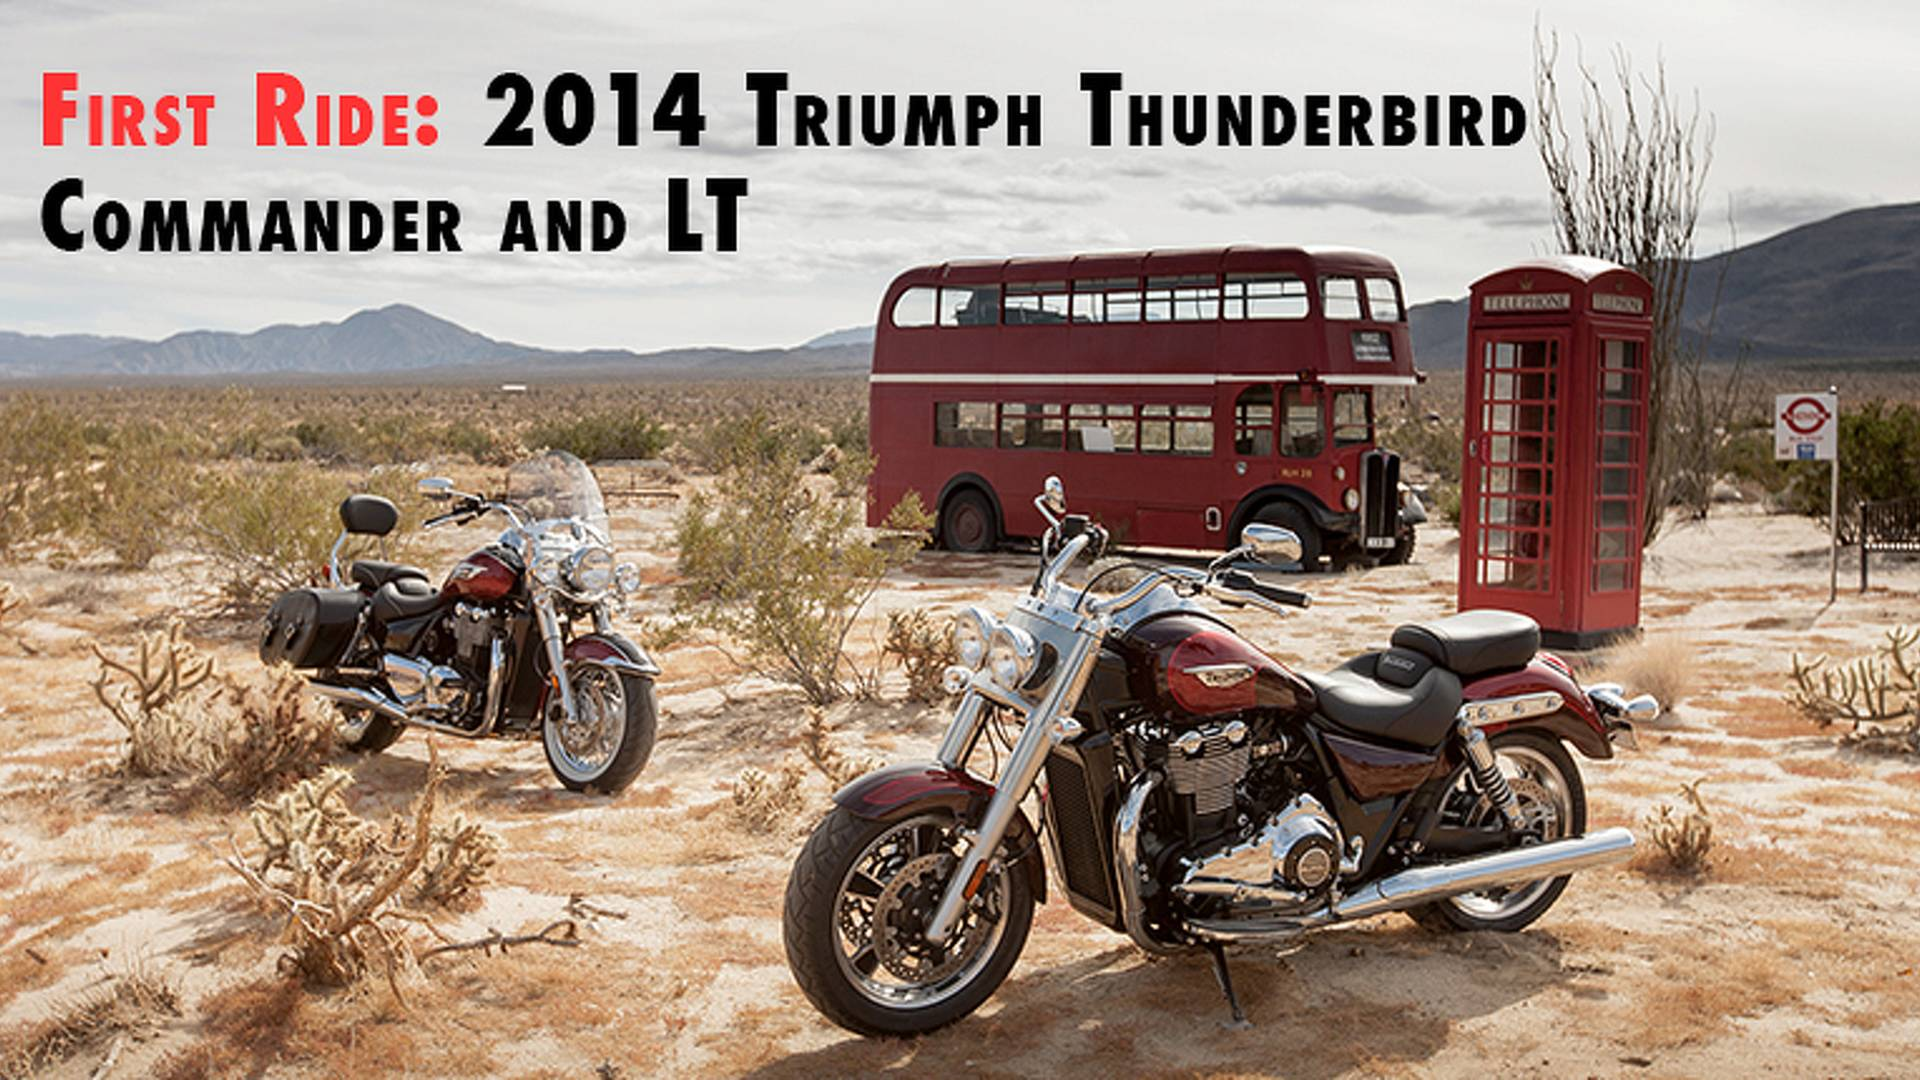 First Ride 2014 Triumph Thunderbird Commander And Thunderbird Lt